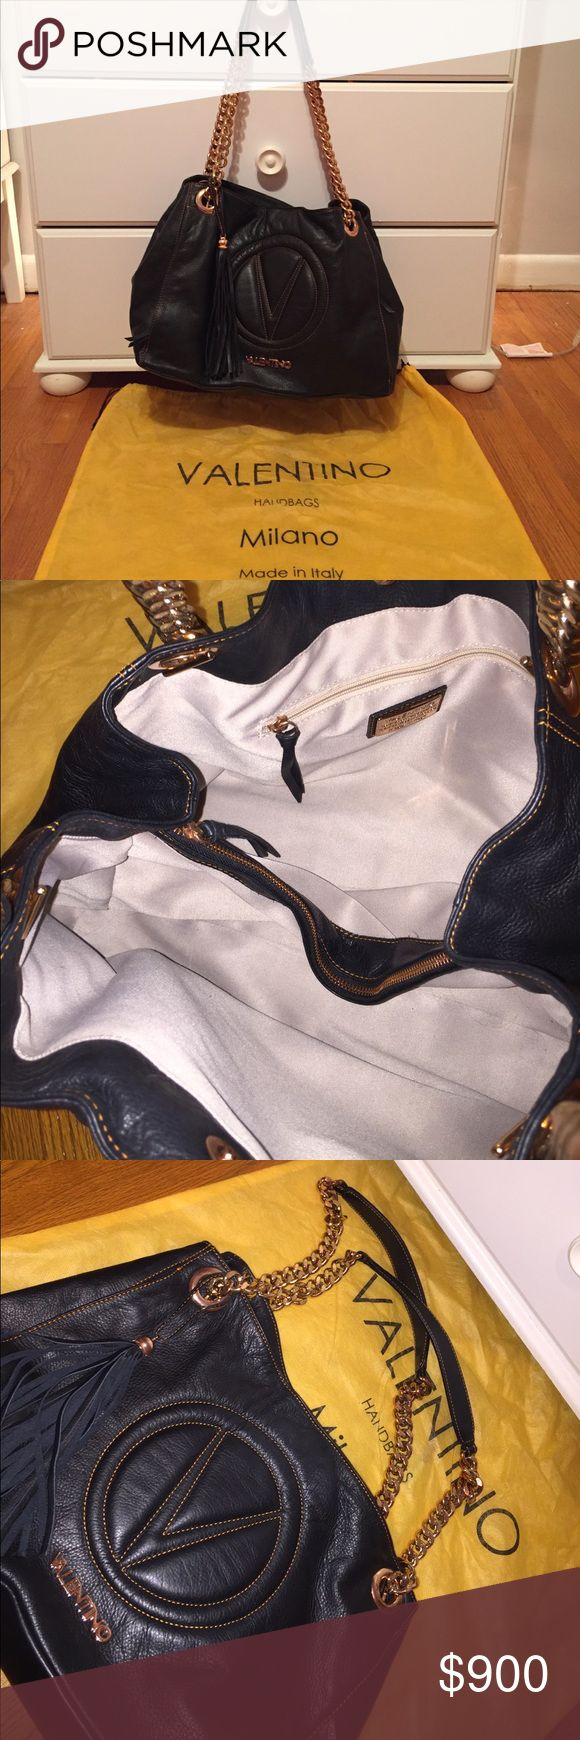 Mario Valentino tote bag Beautiful tote bag. Perfect condition. Has gold handles, many compartments. Perfect everyday bag. Open to offers Mario Valentino Bags Totes